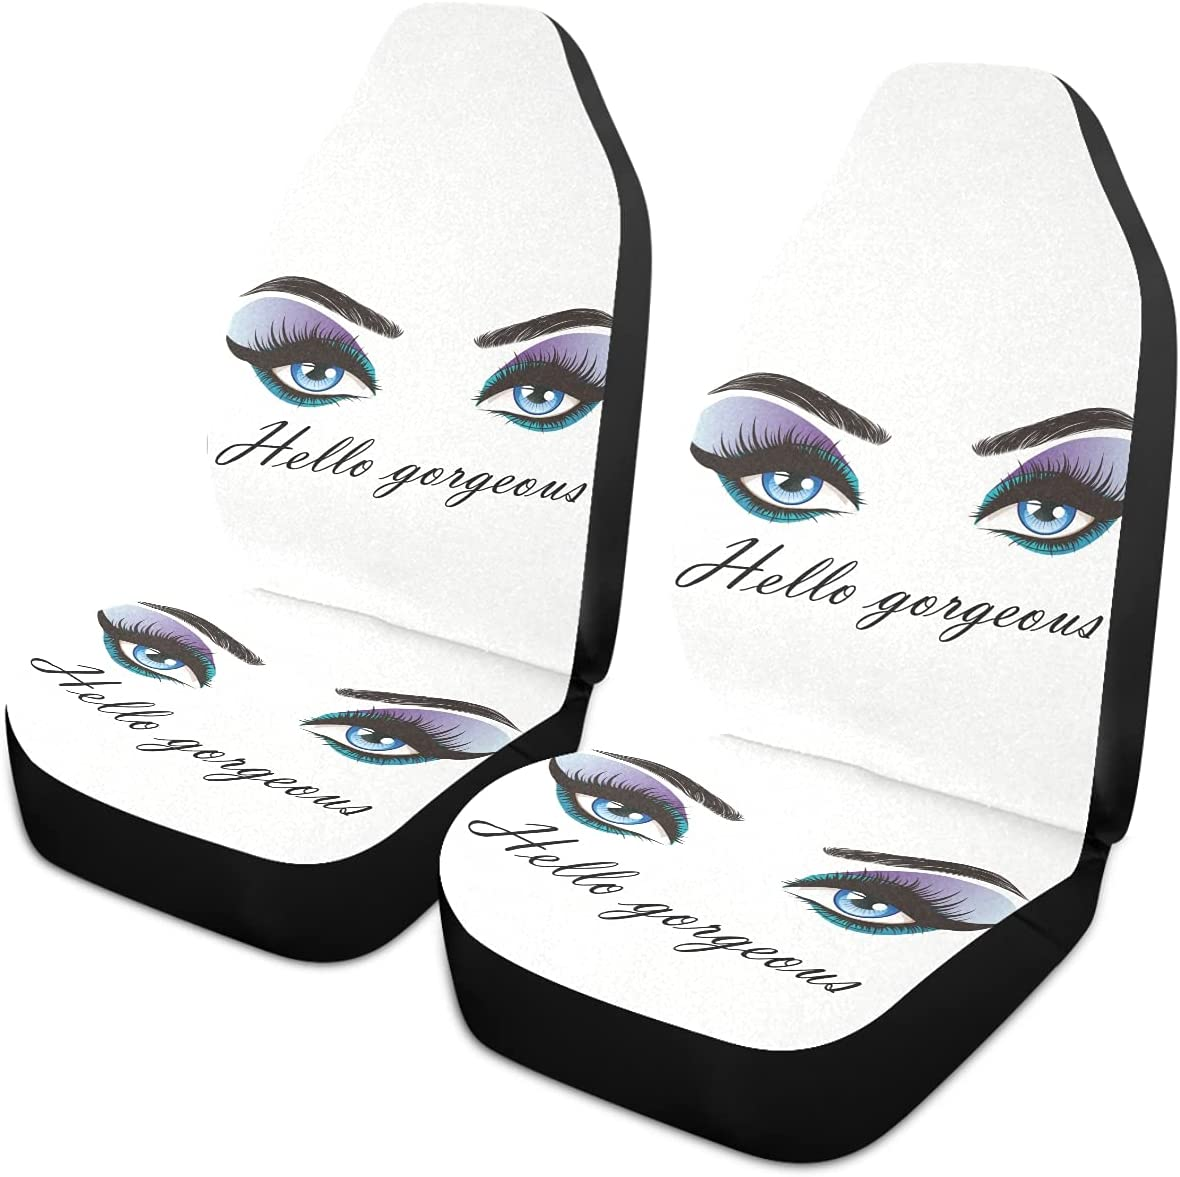 Special price Oarencol Hello Gorgeous Car Seat Blue Covers Women specialty shop Eyelash Eyes